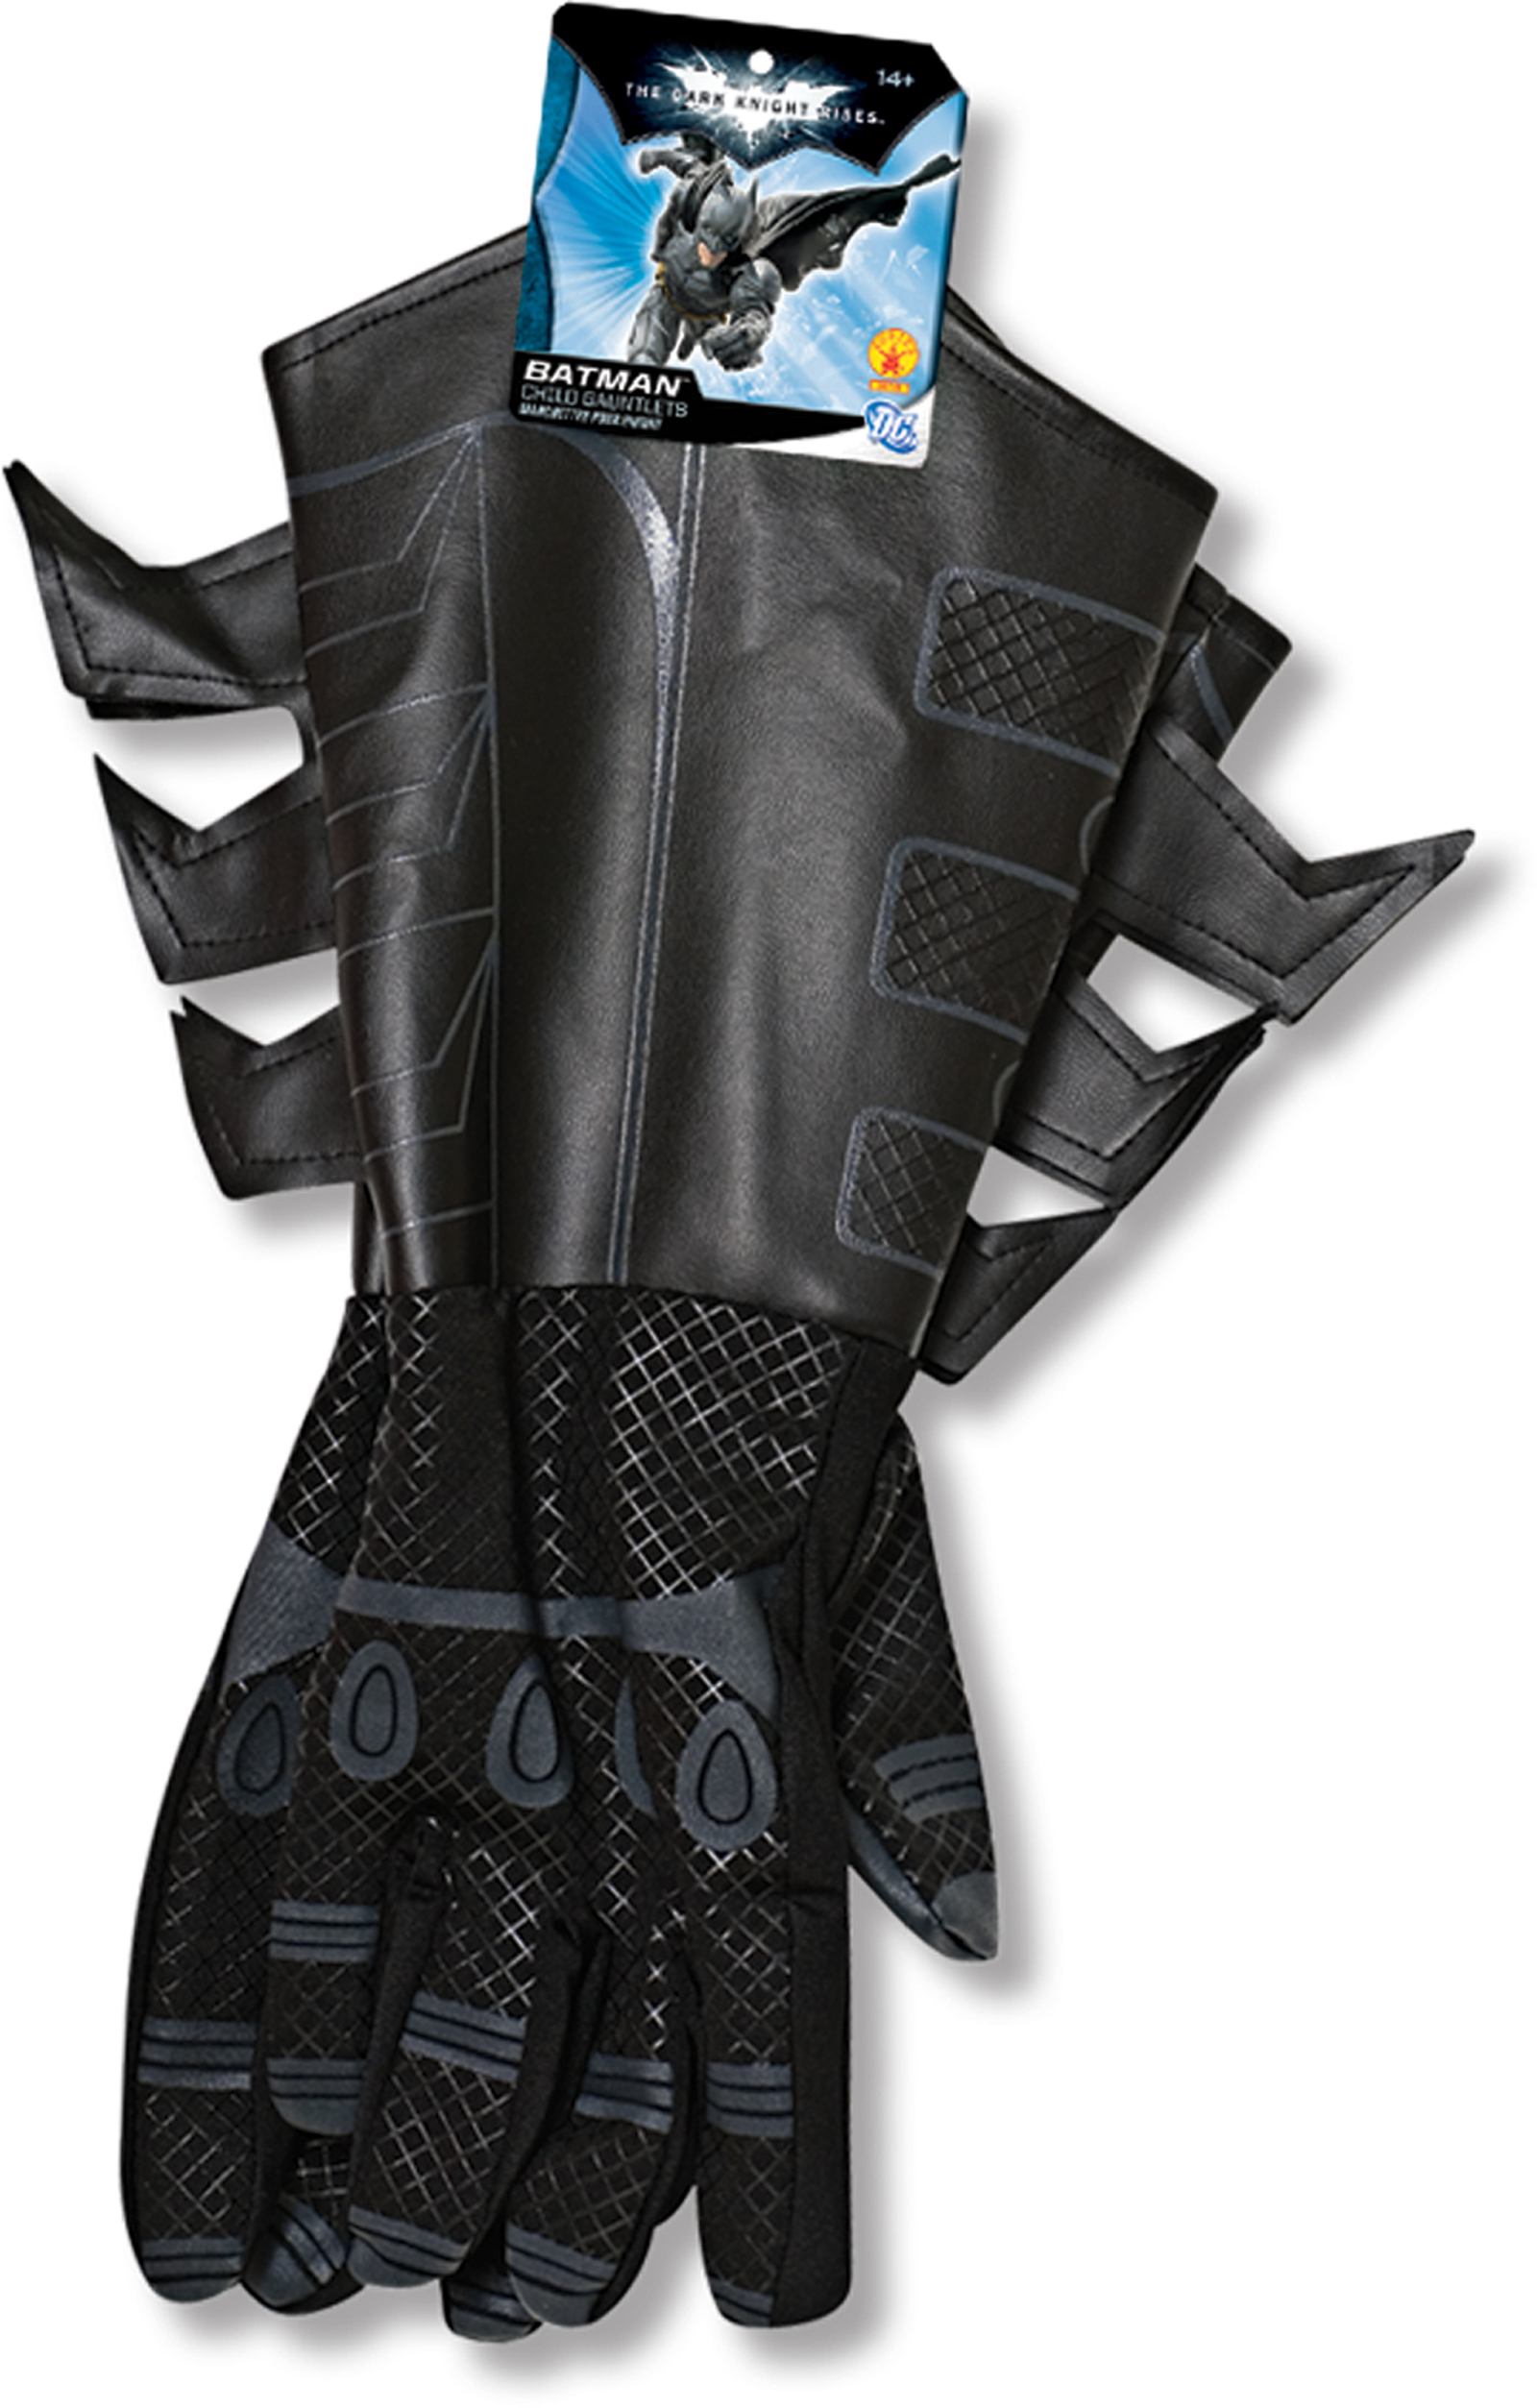 Batman Dark Knight Rises Movie Child Gloves Gauntlets Licensed Costume